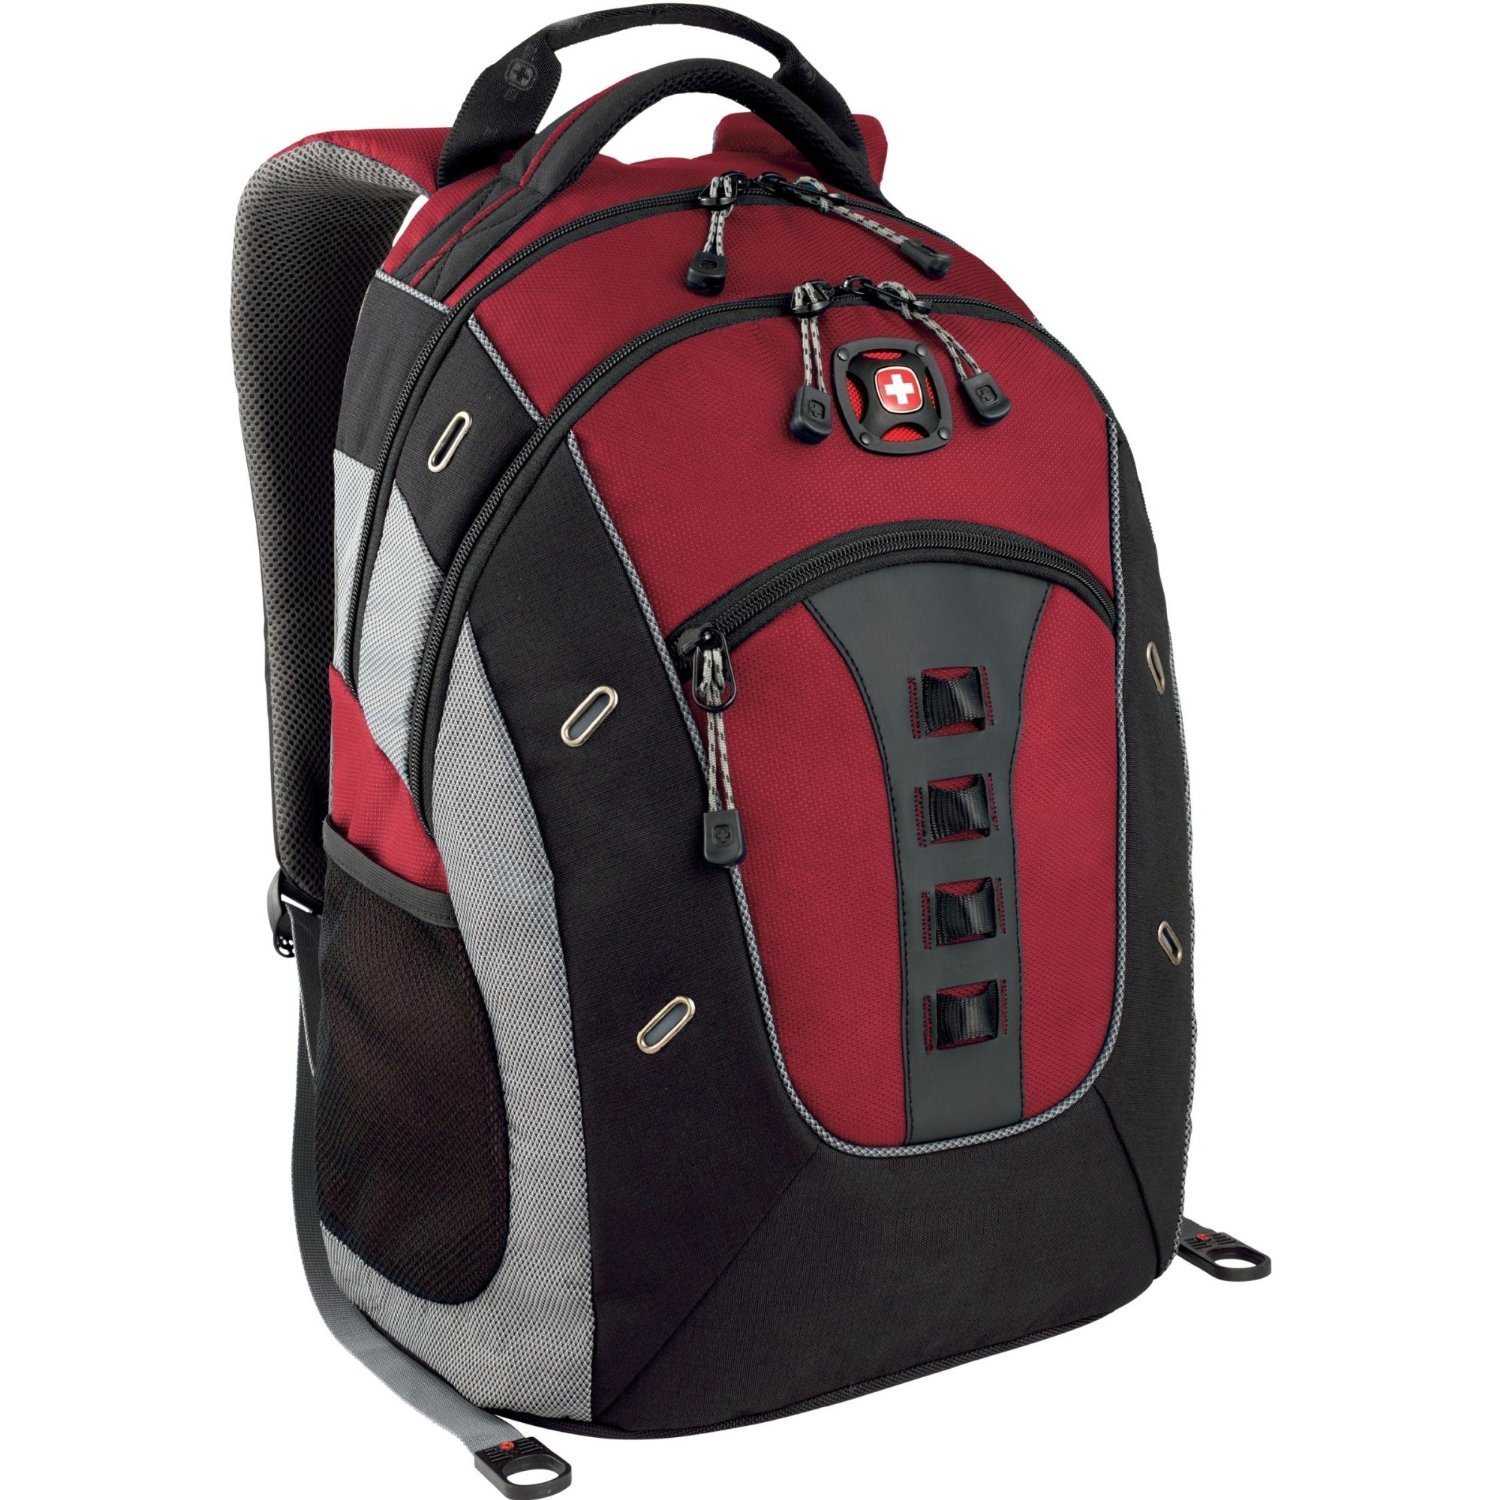 Cheap Wenger Backpack By Swissgear Find Wenger Backpack